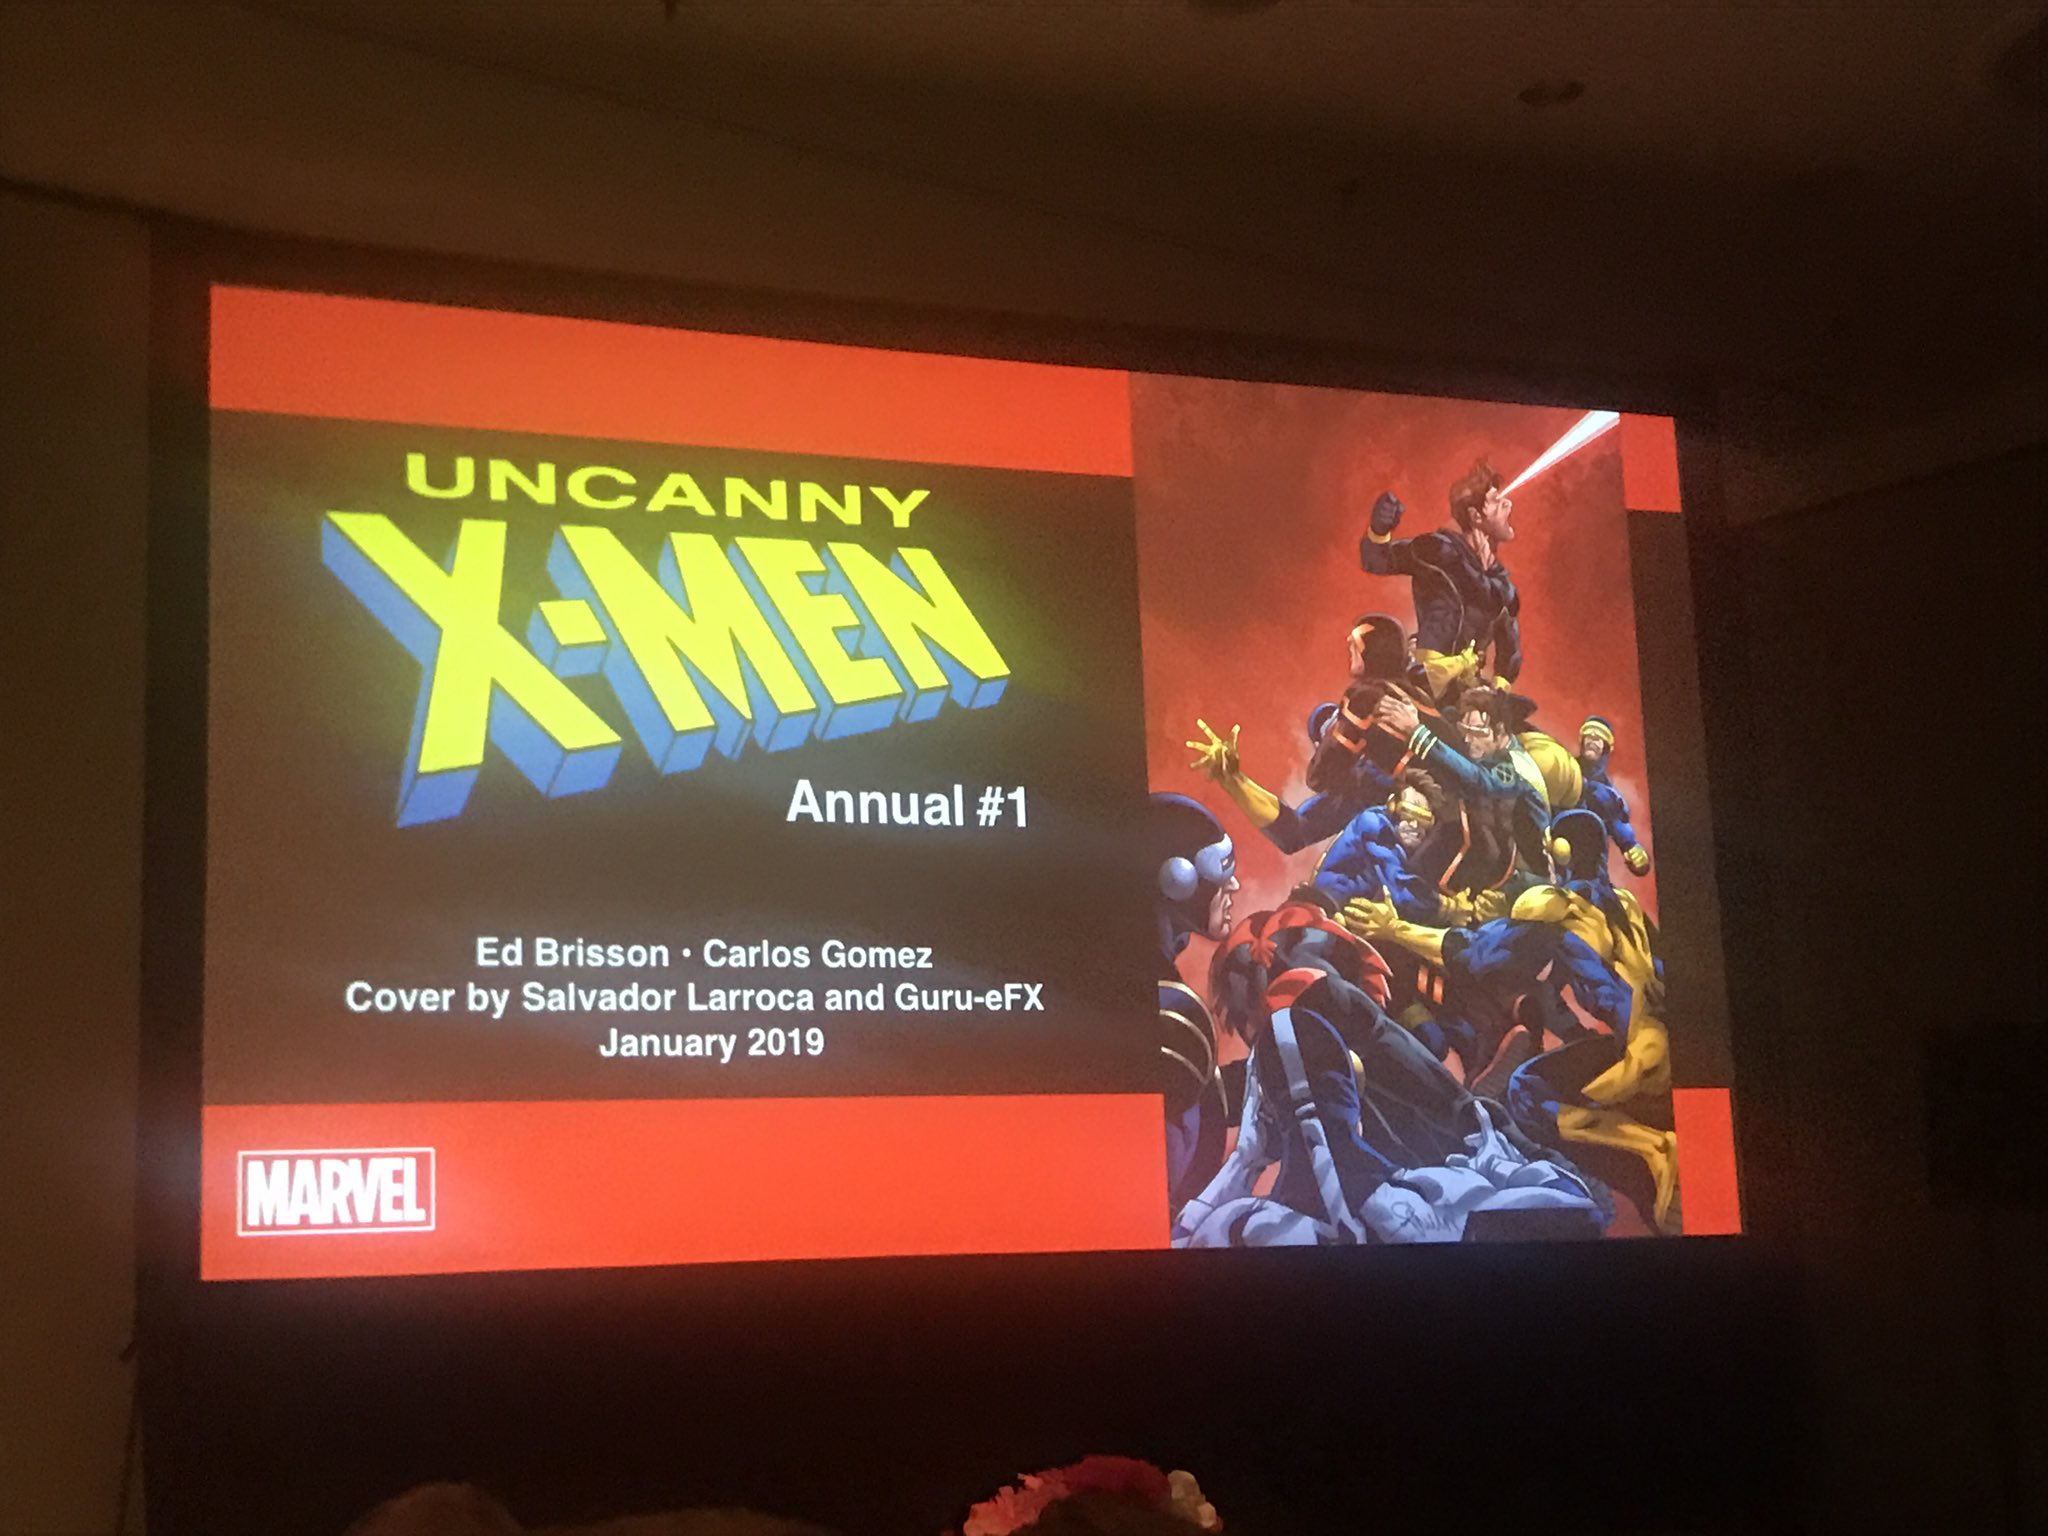 Cyclops: Dead or alive? We'll find out in 'Uncanny X-Men Annual' #1